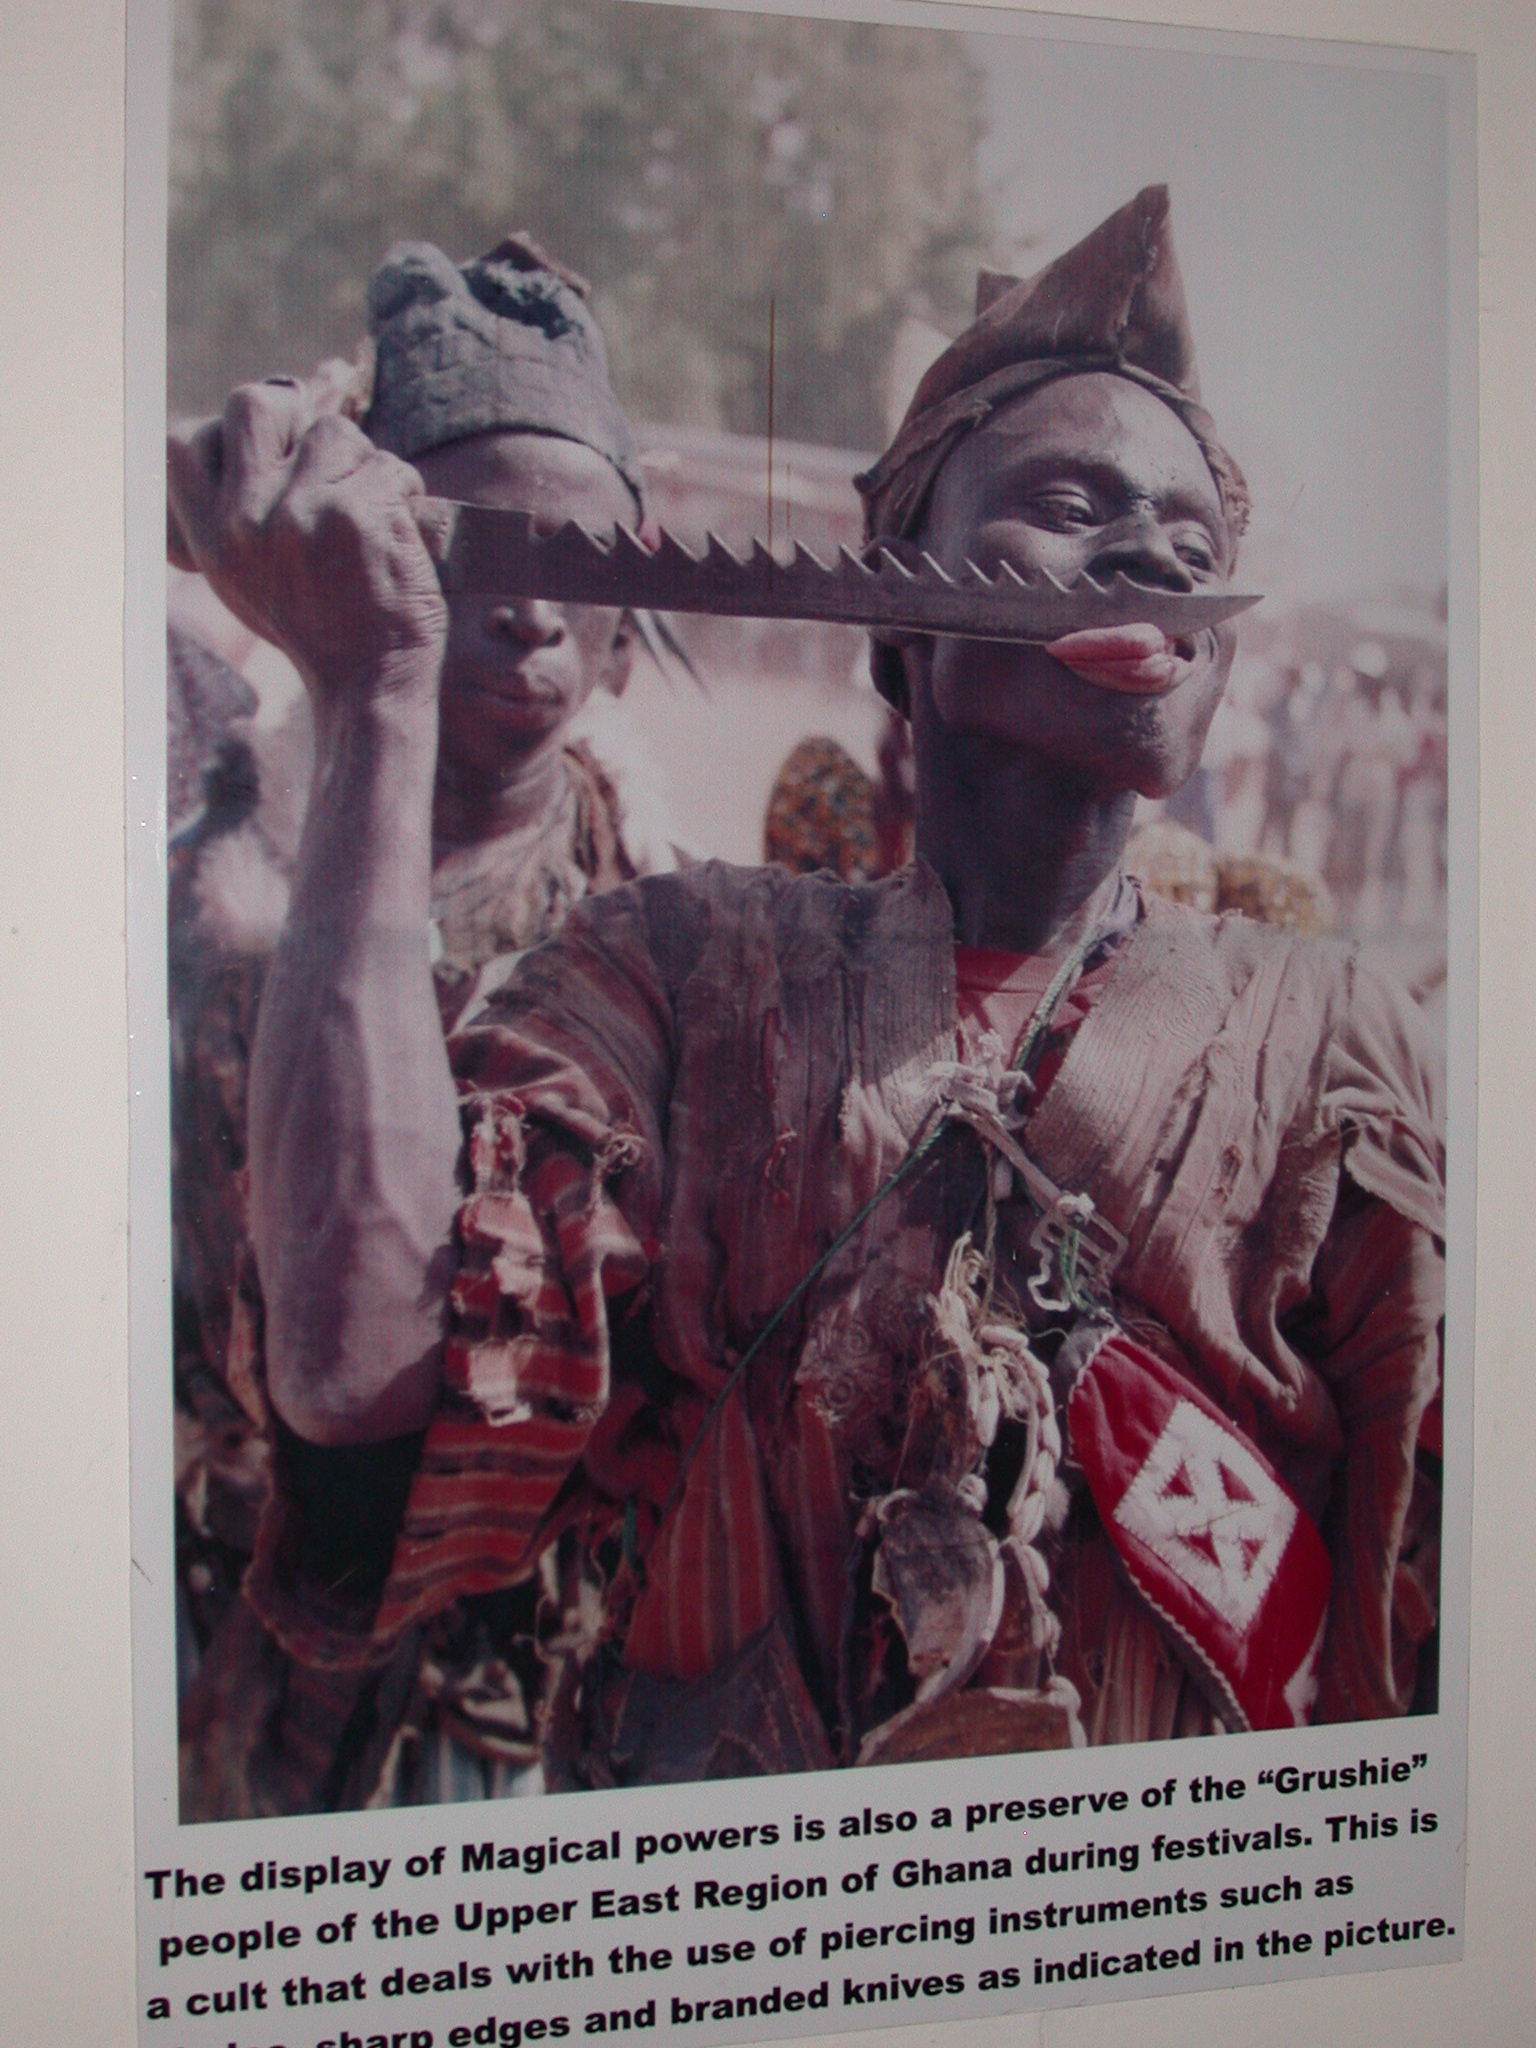 Picture of Grushie Person and Cult of Piercing Instruments, National Museum, Accra, Ghana